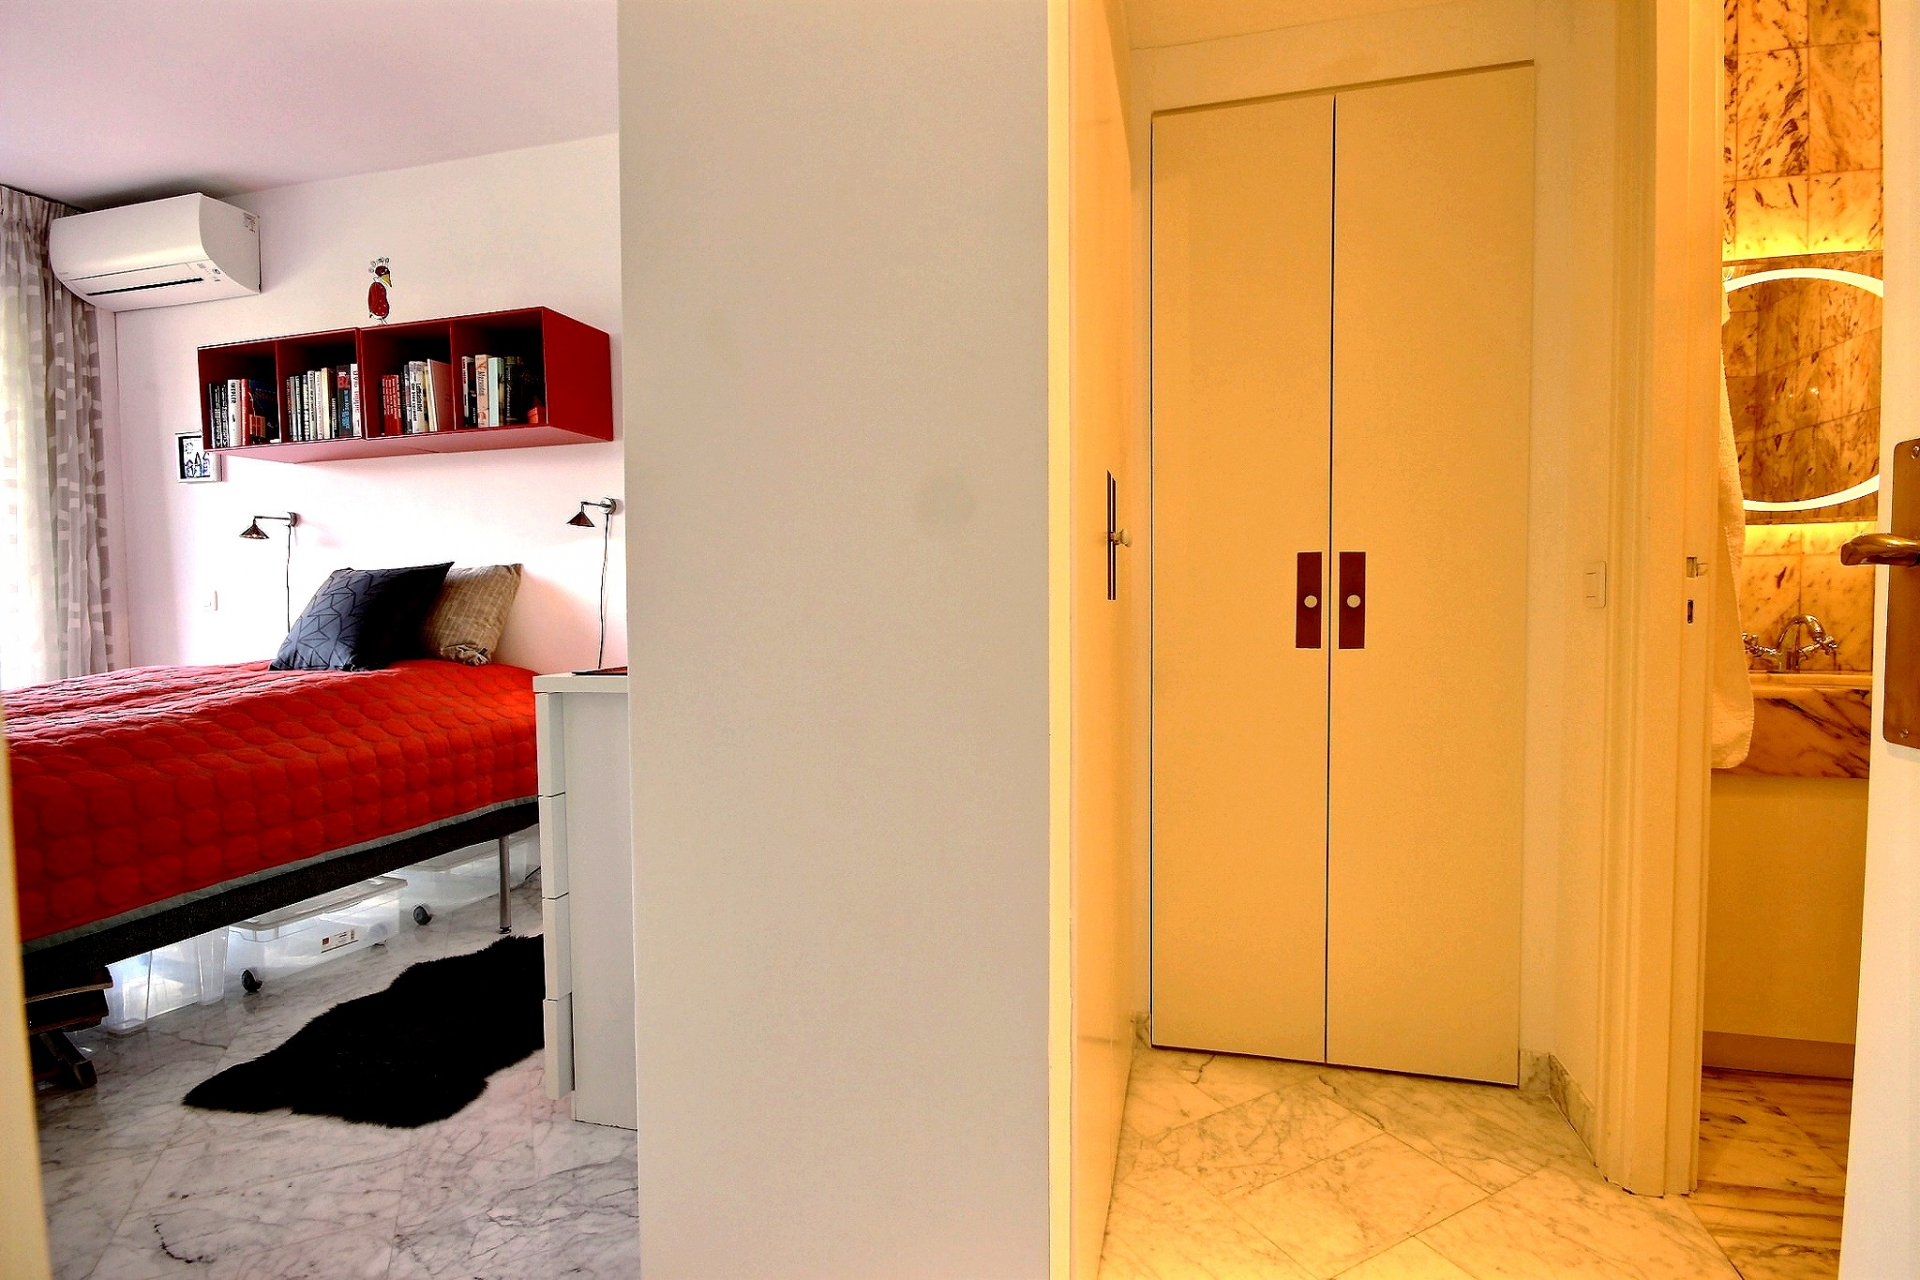 Sole agent 1 bedroom flat for sale  in Parc Penh Chaï Le Cannet French Riviera